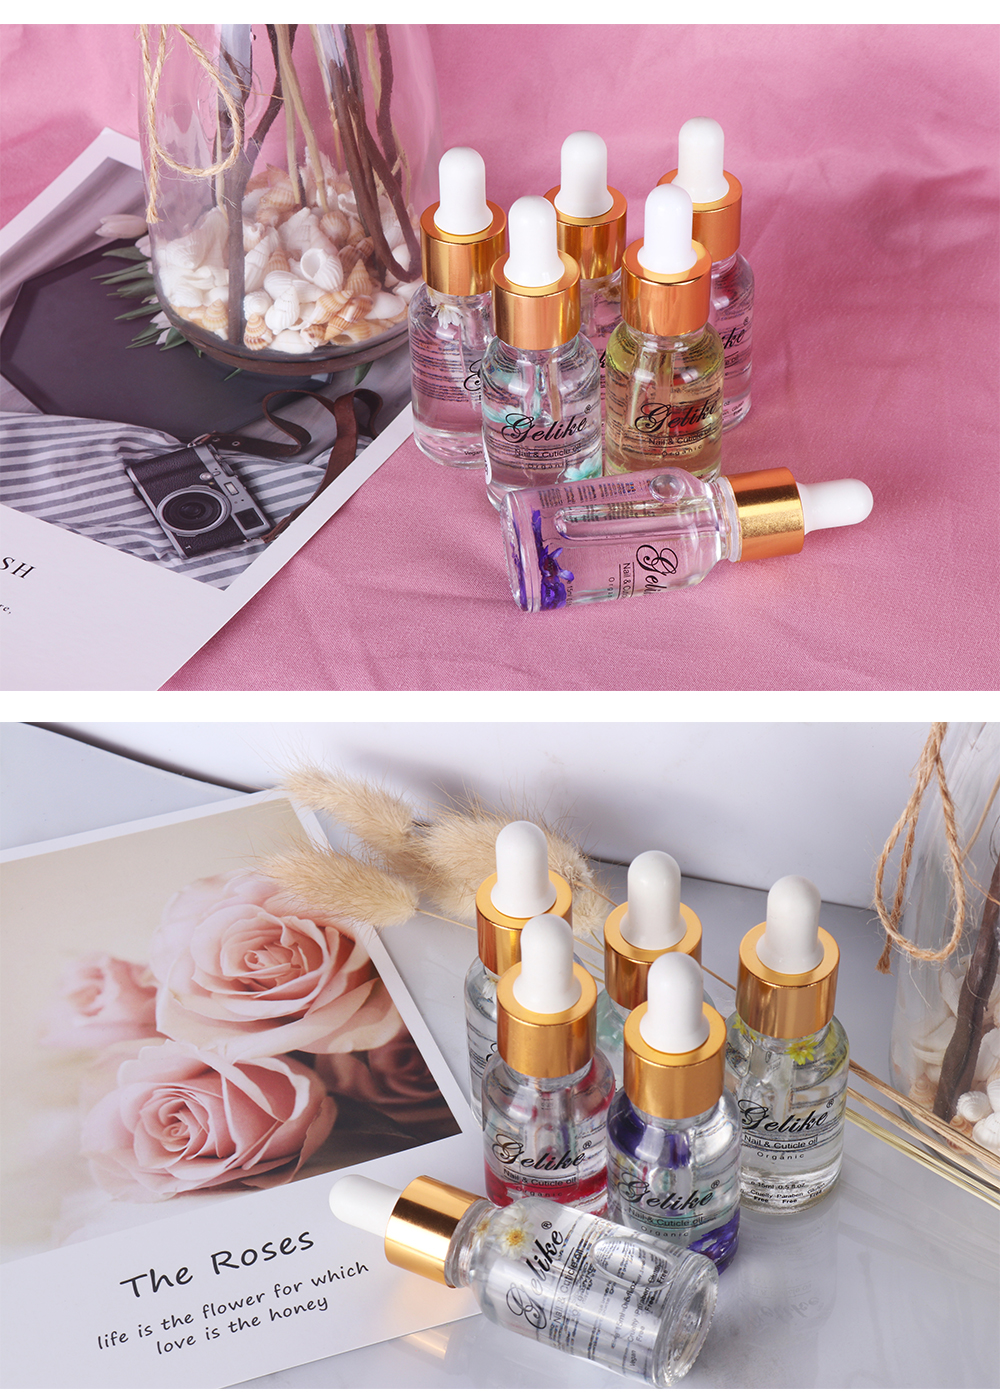 cuticle oil with flowers